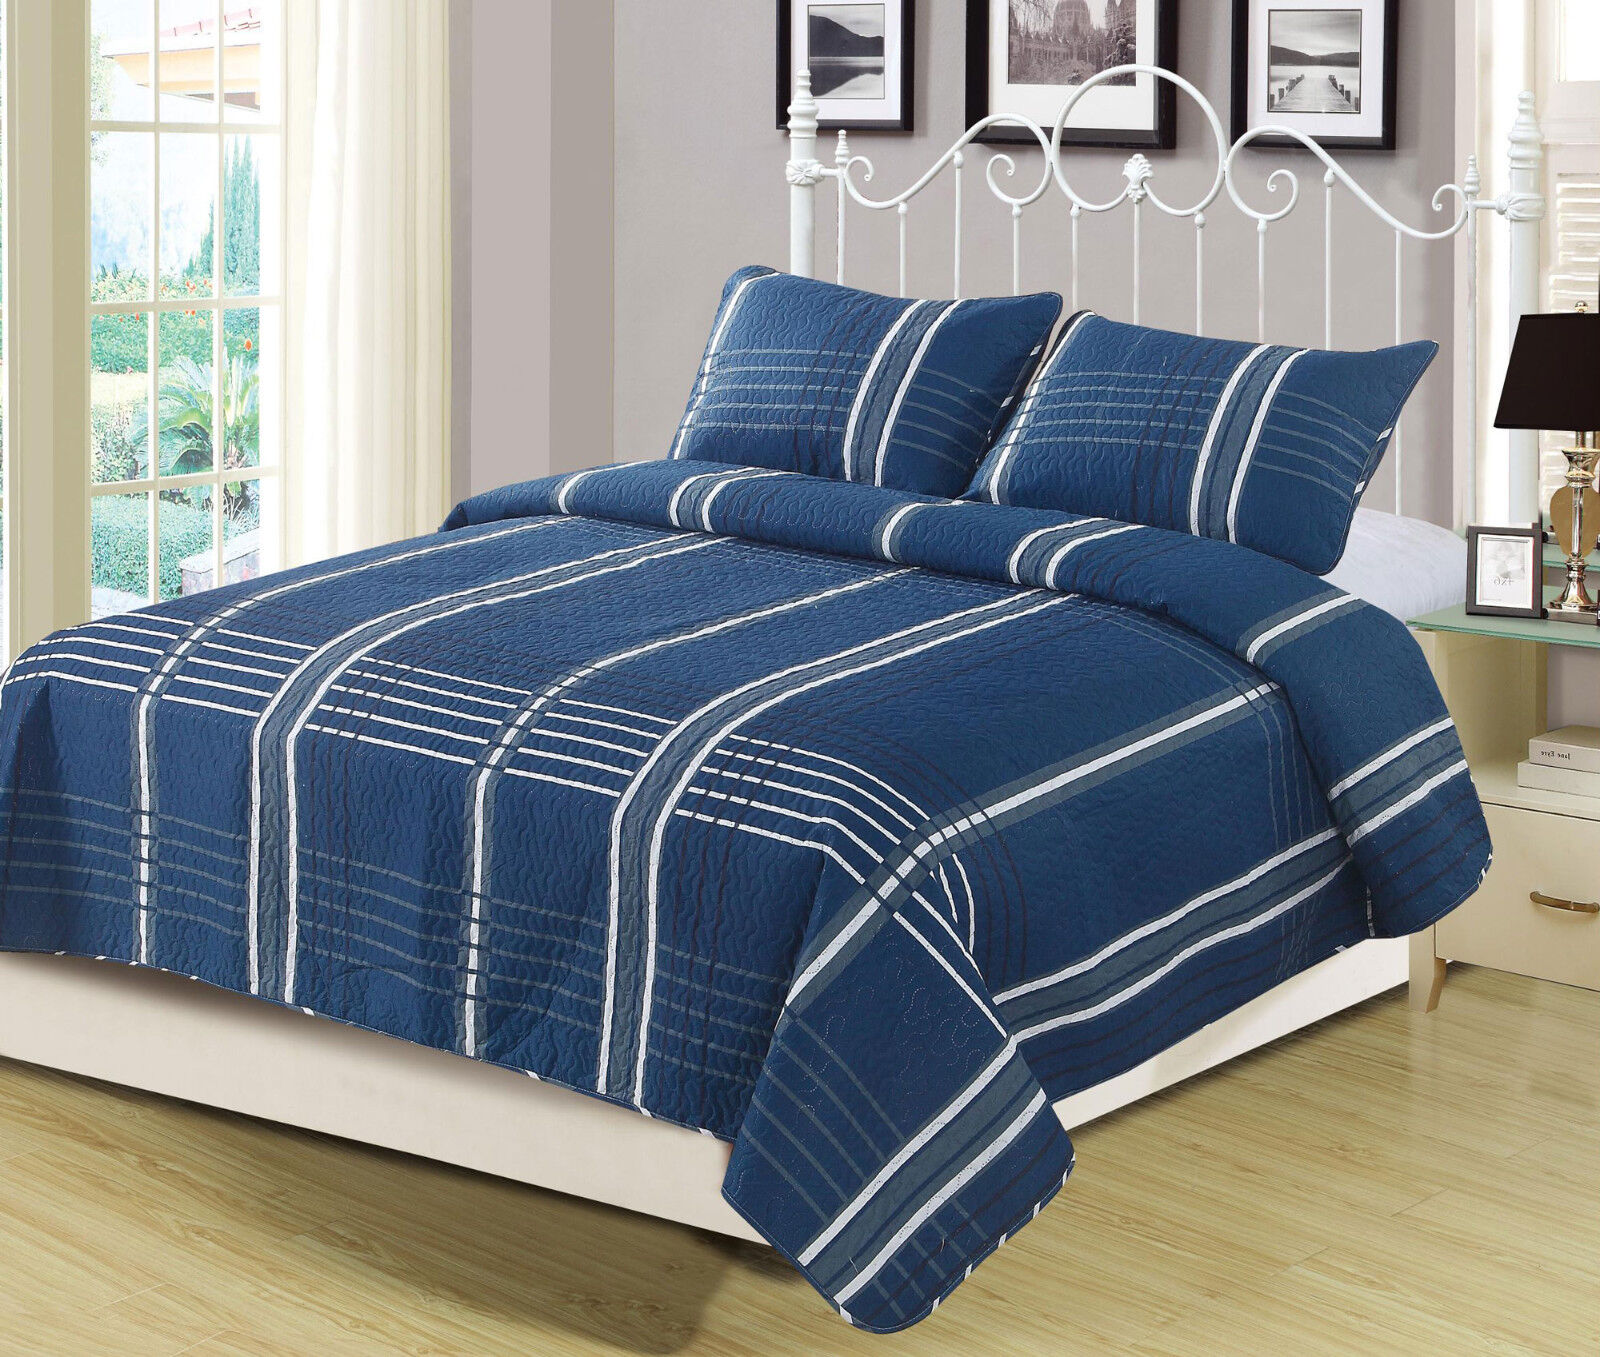 Queen or King Navy Stripe Plaid Checkered Quilt Bedding Set Blue Grey and White Bedding